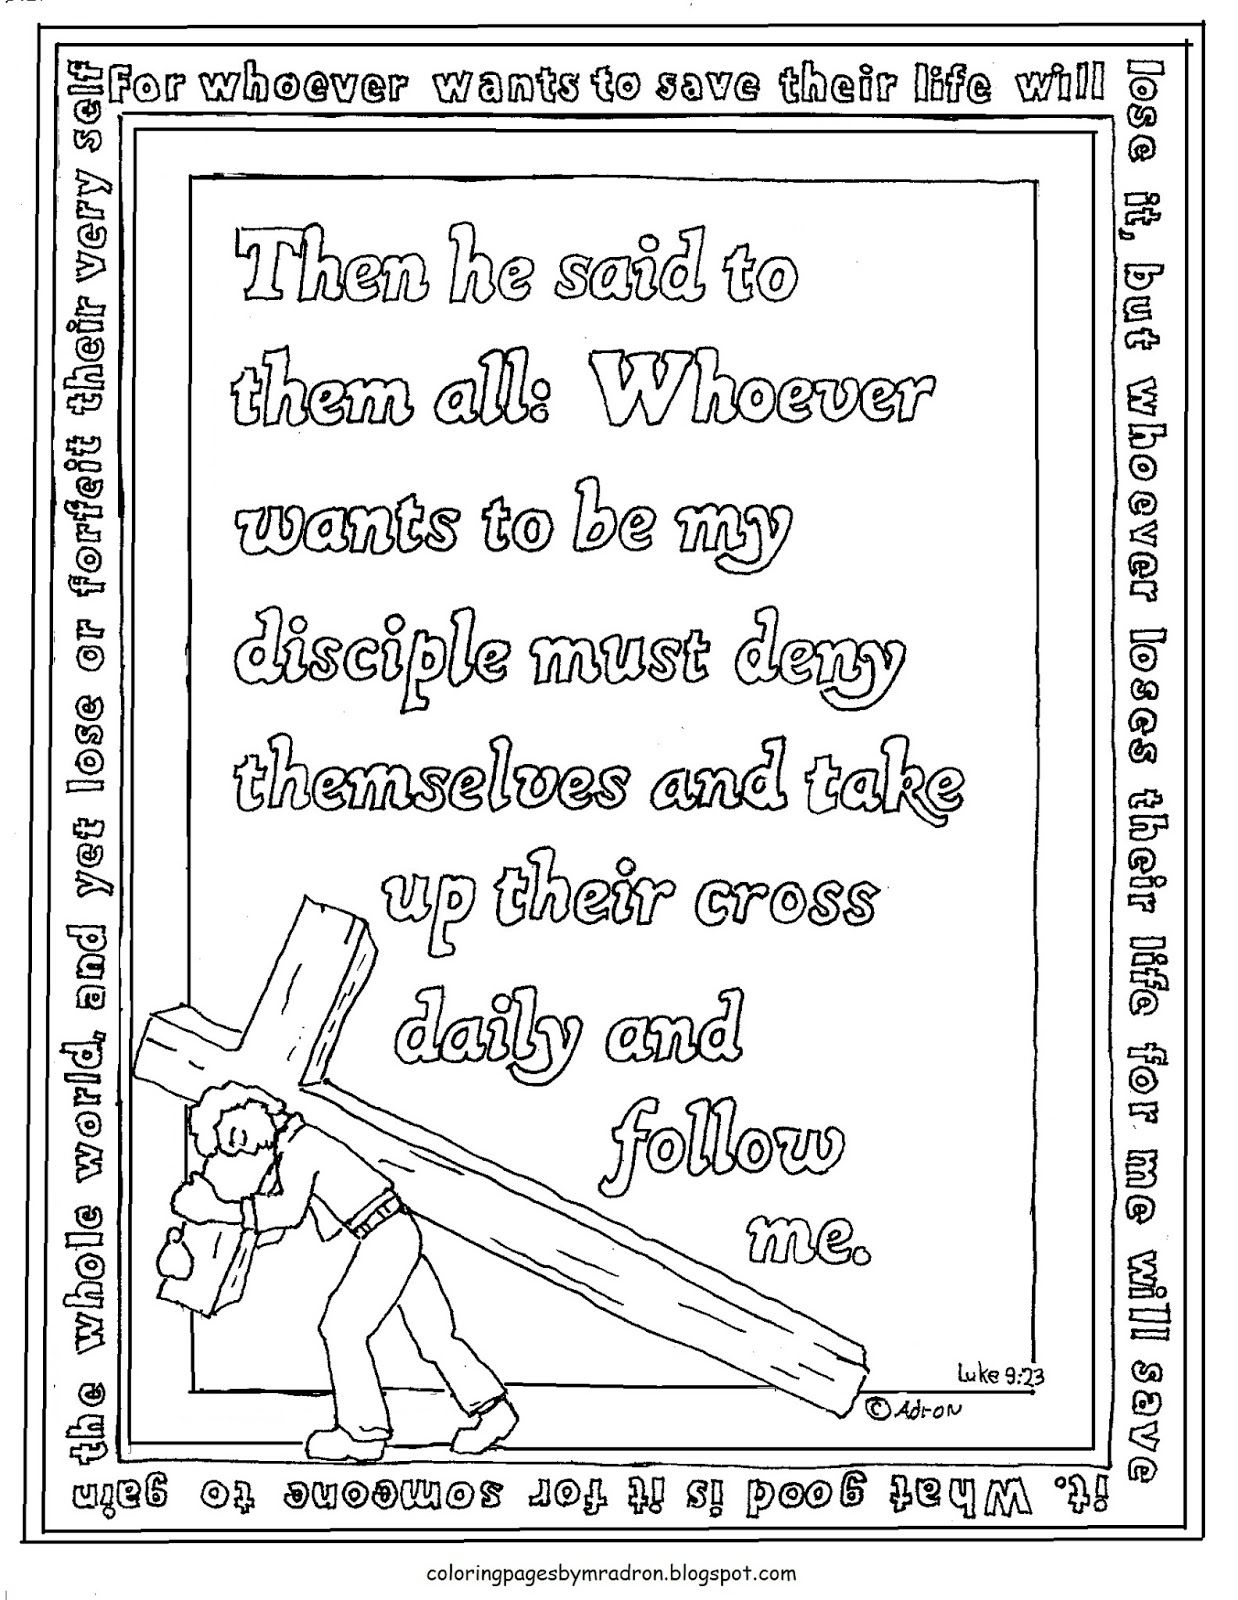 Coloring pages for 9 and up - Printable Luke 9 23 Coloring Page Take Up Their Cross Daily